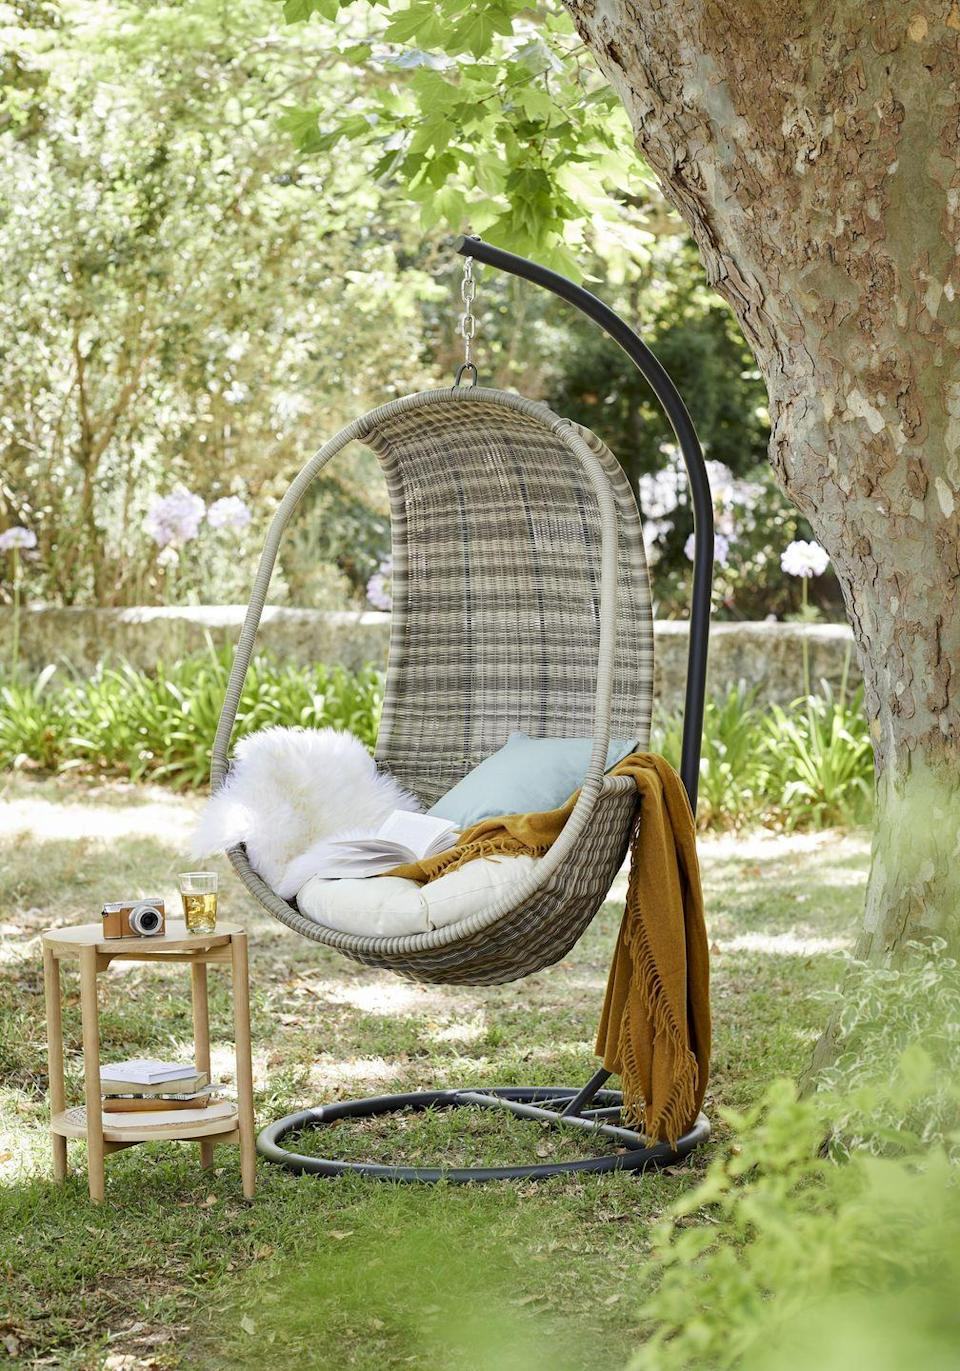 """<p>Egg chairs are all the rage this summer. As well as looking incredibly stylish in the <a href=""""https://www.countryliving.com/uk/homes-interiors/gardens/g35861330/best-garden-parasols-bases/"""" rel=""""nofollow noopener"""" target=""""_blank"""" data-ylk=""""slk:garden"""" class=""""link rapid-noclick-resp"""">garden</a>, they're the perfect spot for gently swinging in the sunshine. Add a soft blanket for extra comfort. </p><p><a class=""""link rapid-noclick-resp"""" href=""""https://go.redirectingat.com?id=127X1599956&url=https%3A%2F%2Fwww.johnlewis.com%2Fjohn-lewis-partners-garden-dante-hanging-pod-chair%2Fp2067115&sref=https%3A%2F%2Fwww.countryliving.com%2Fuk%2Fhomes-interiors%2Fgardens%2Fg35933581%2Fjohn-lewis-garden-collection-spring-summer%2F"""" rel=""""nofollow noopener"""" target=""""_blank"""" data-ylk=""""slk:SHOP NOW"""">SHOP NOW</a></p>"""